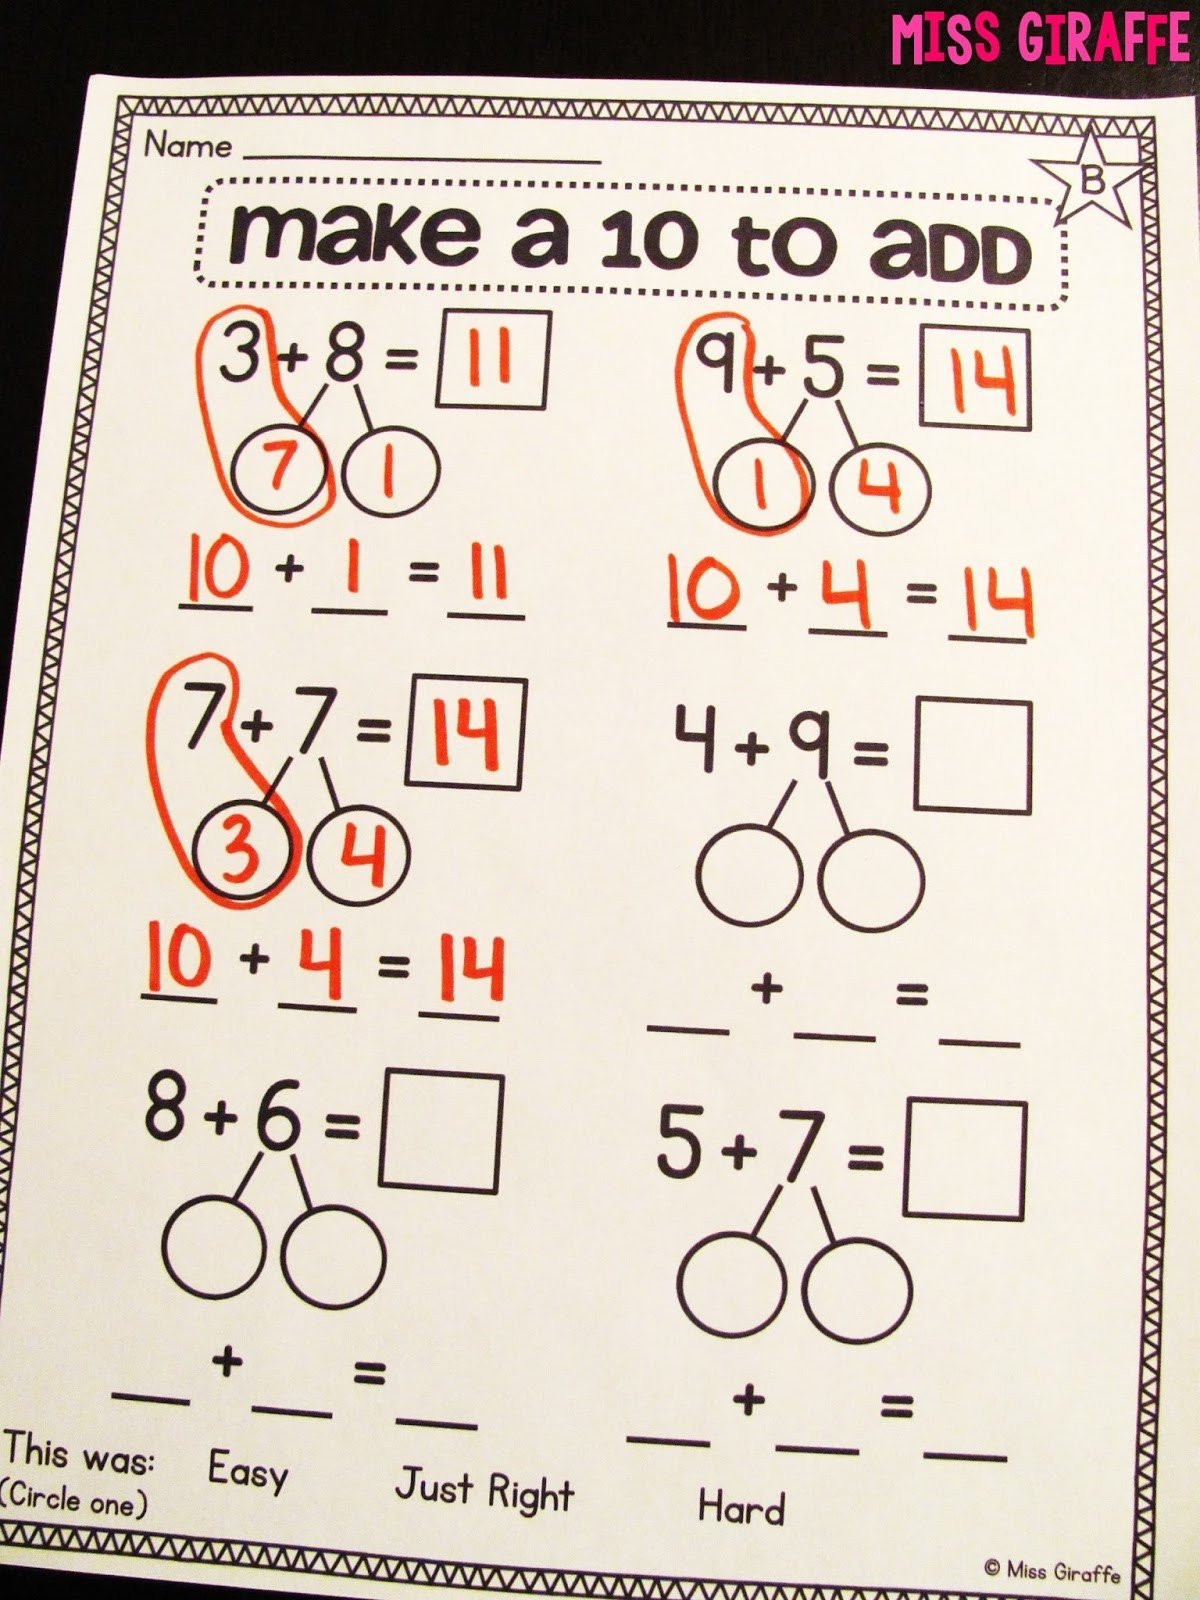 Decomposing Numbers to 10 Worksheets Miss Giraffe S Class Making A 10 to Add